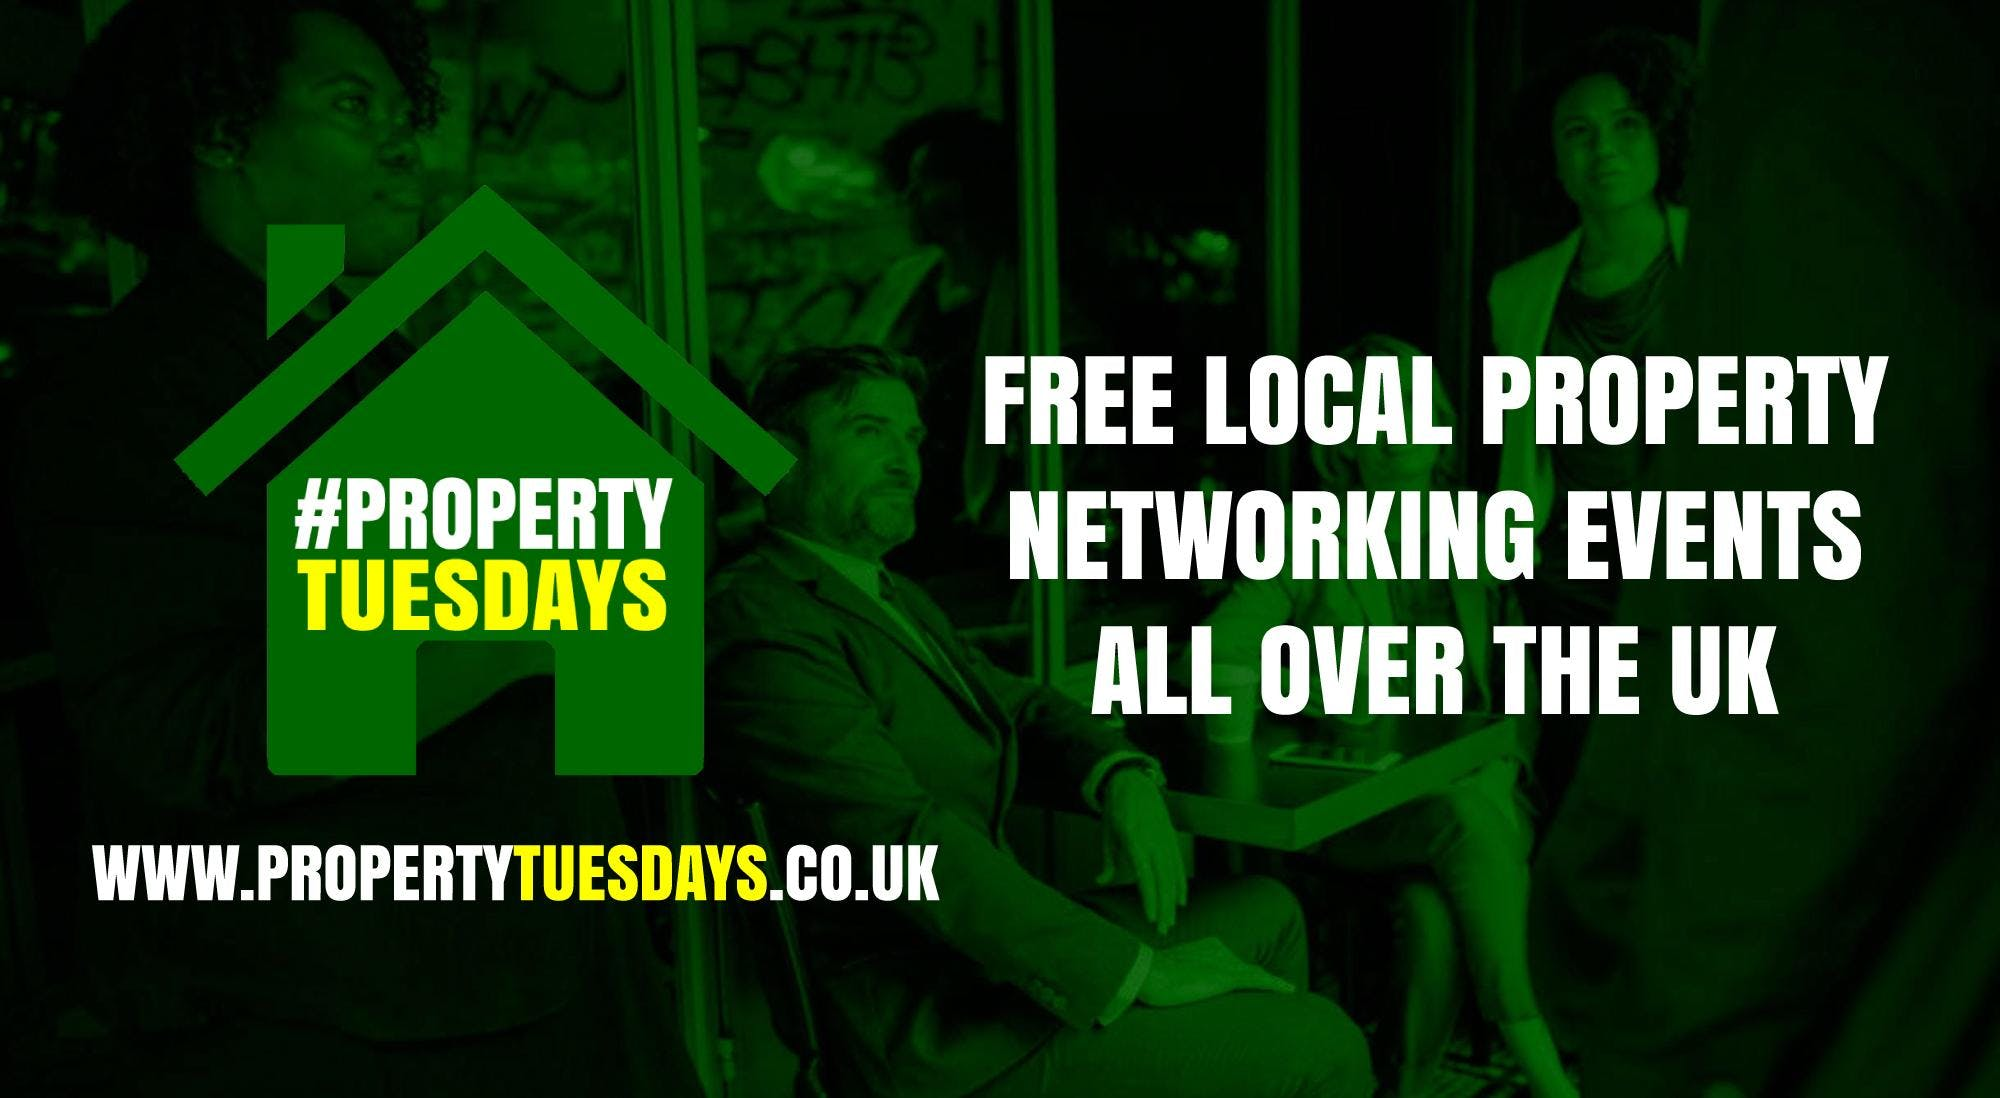 Property Tuesdays! Free property networking event in Fleet